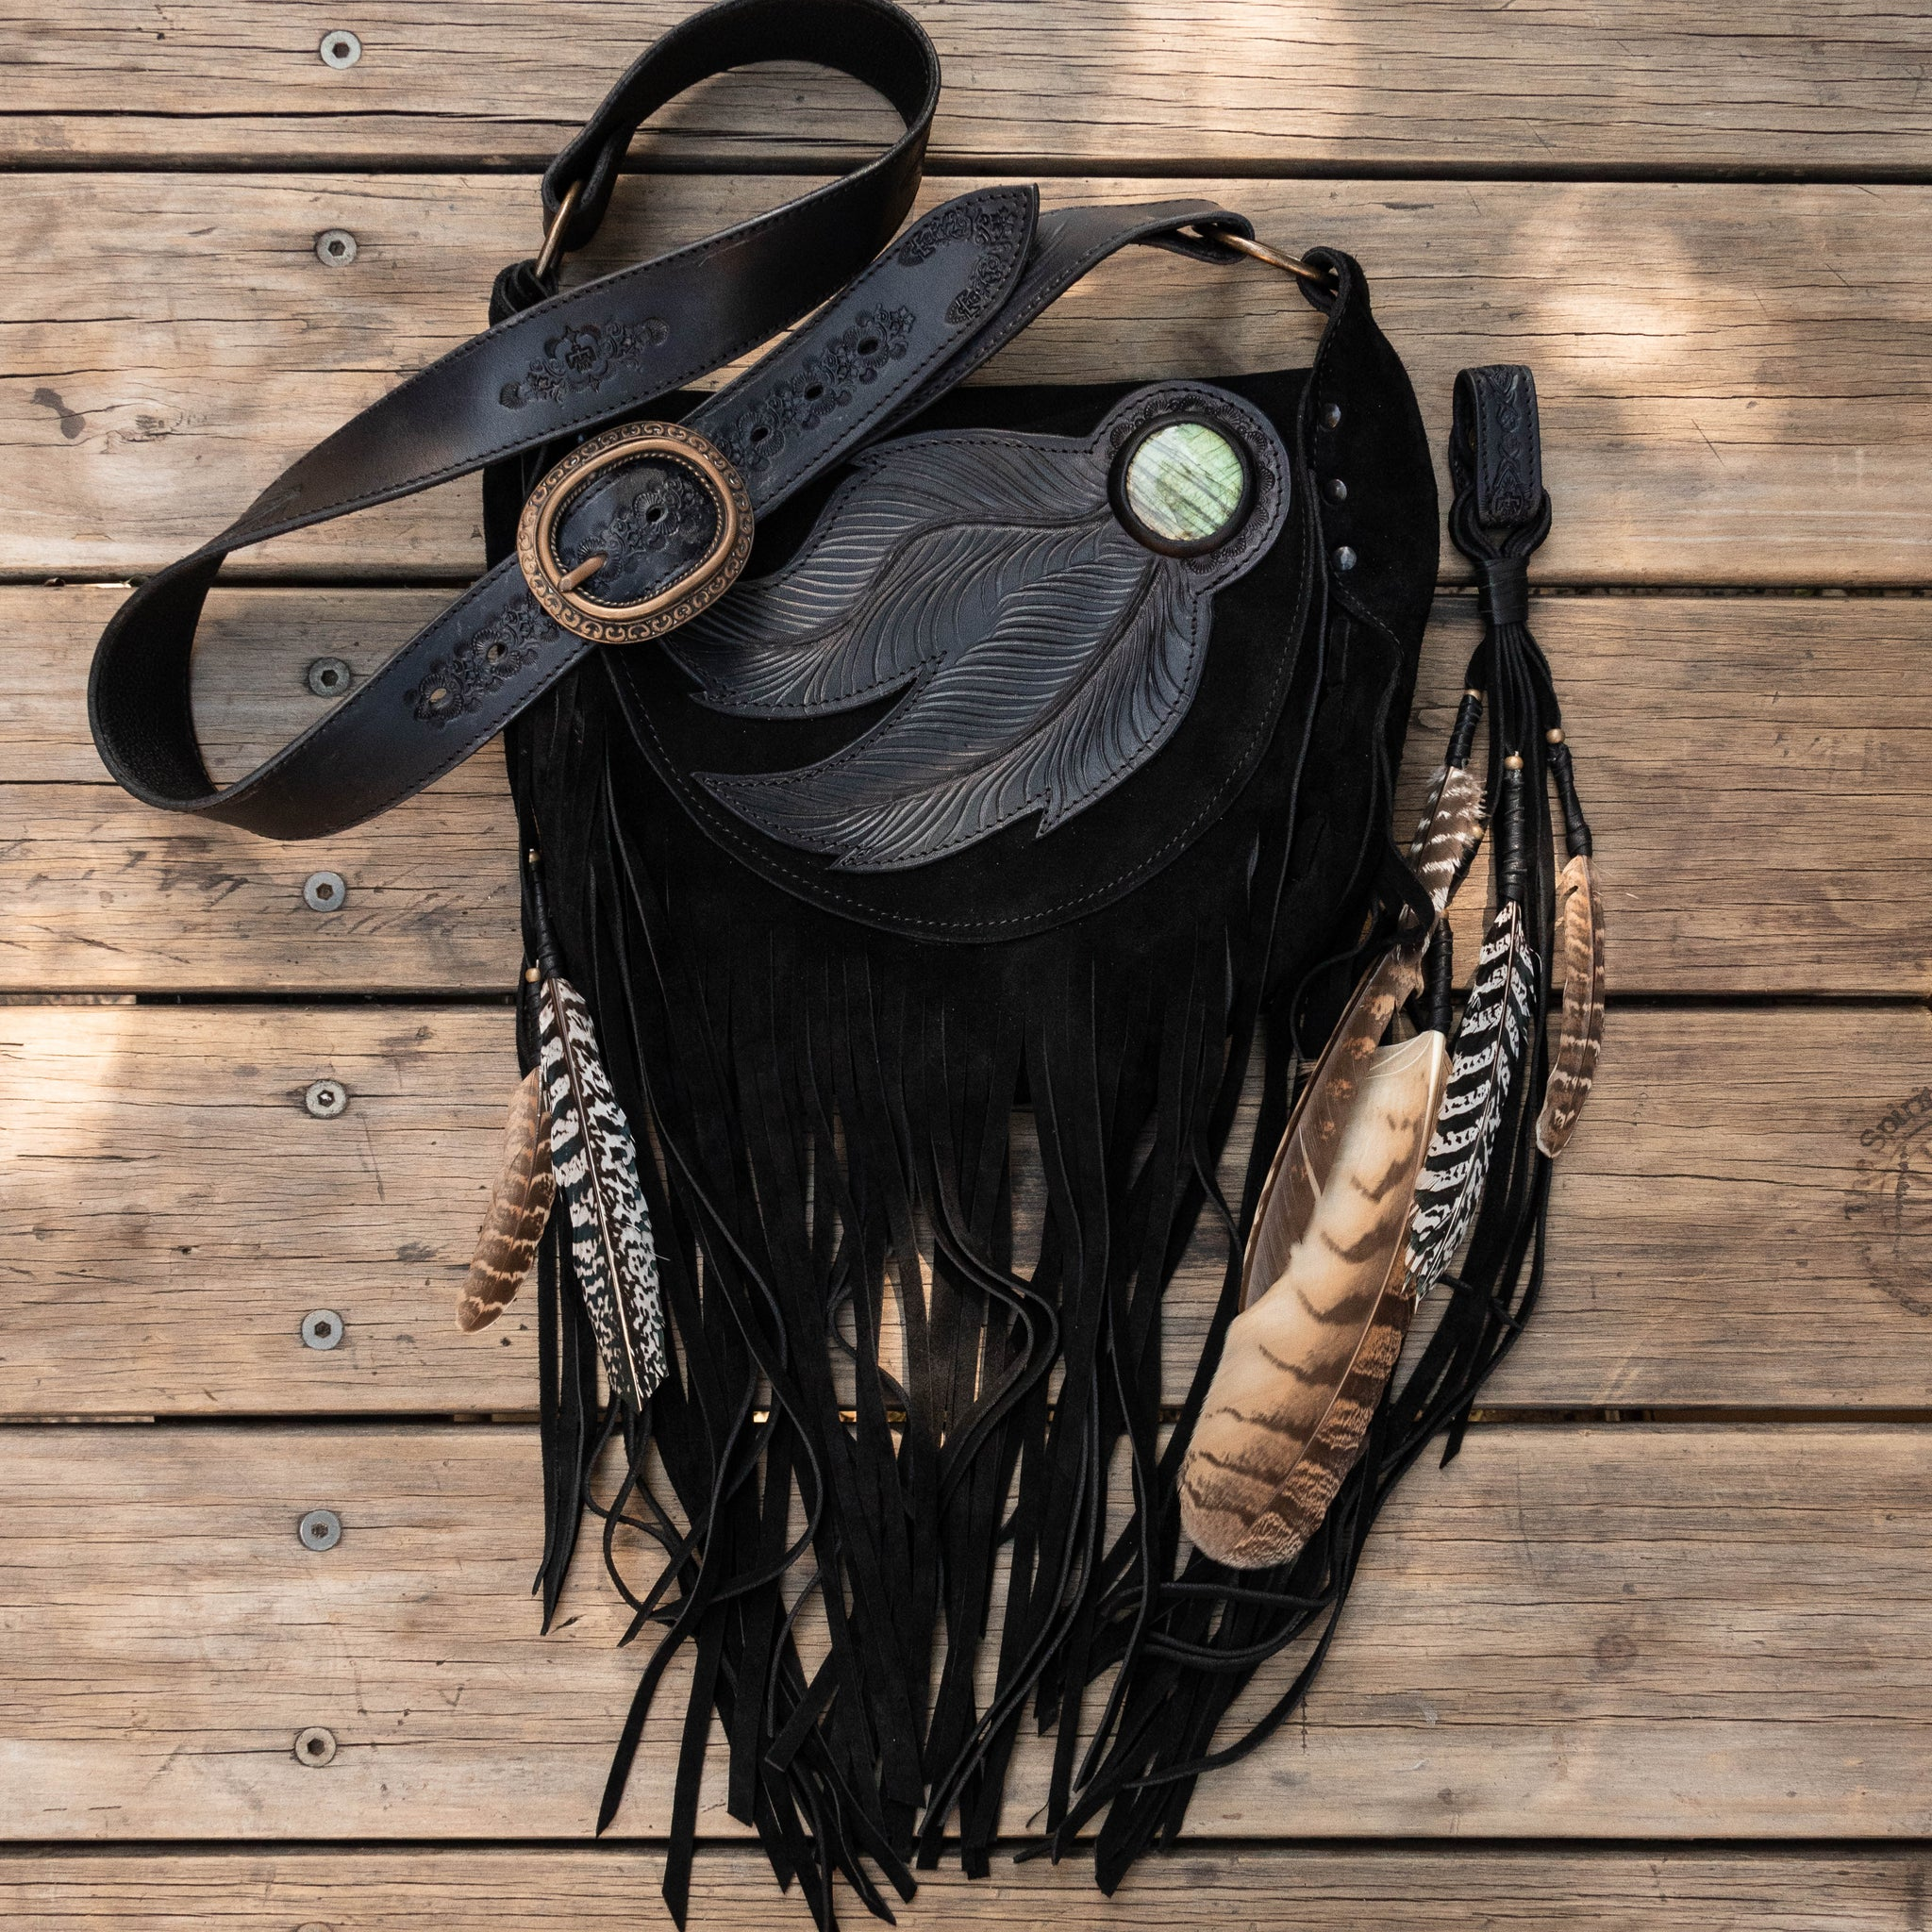 Dreamcatcher Festival Bag in charcoal black suede with Labradorite stone inlay topped off with a vintage brass buckle - $1500